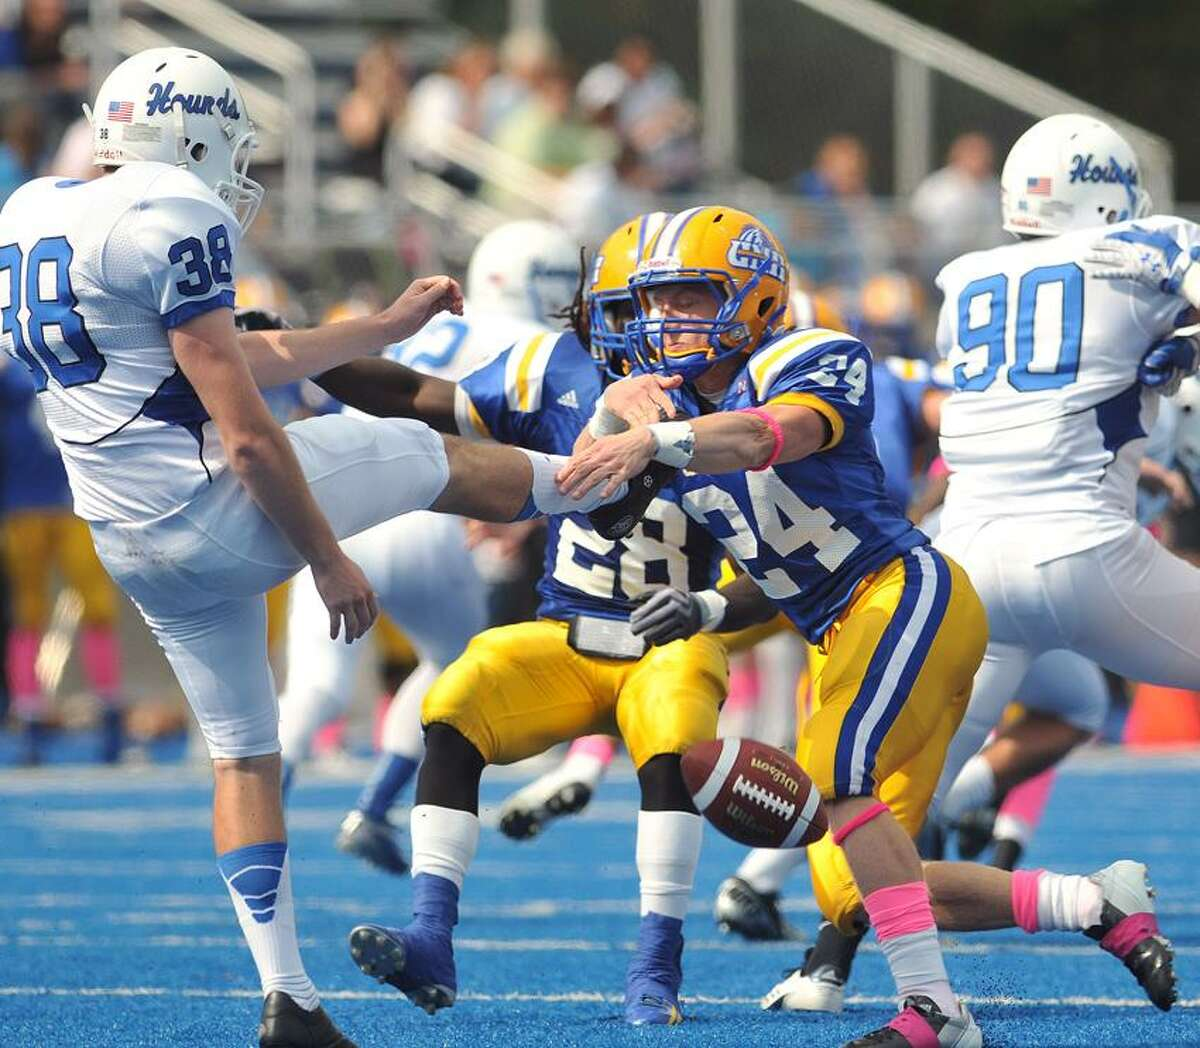 West Haven--UNH's Matt Stevco blocks the punt by Assumption's Patrick Tyler, which set up a TD in the first quarter. (UNH #28, rear, is Anthony Tillman) Photo Peter Casolino/New Haven Register 10/6/12